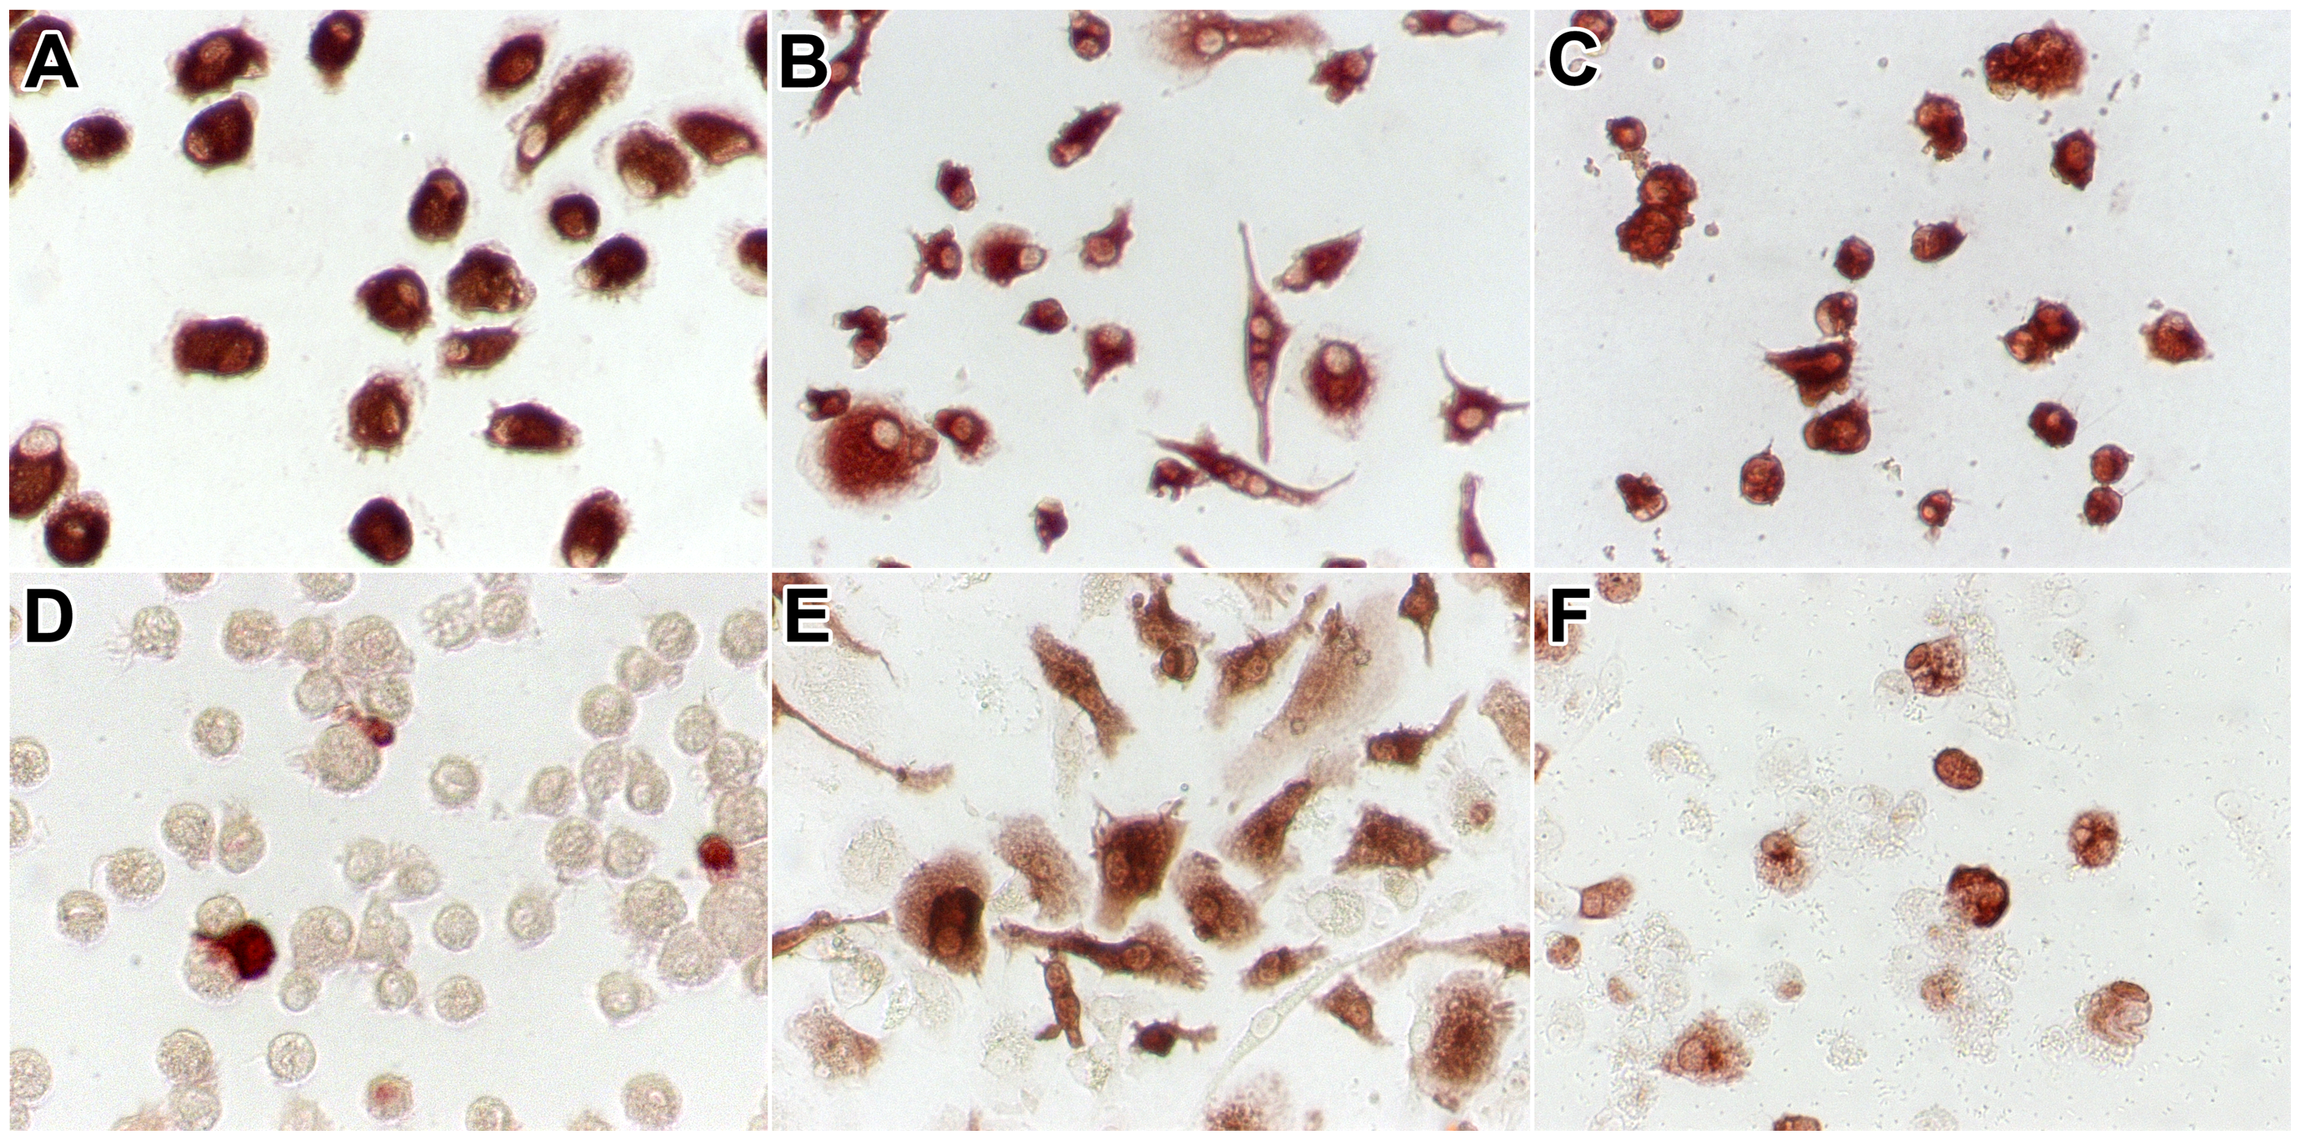 CD68 and influenza A virus antigen expression in alveolar macrophages and macrophages cultured from monocytes.